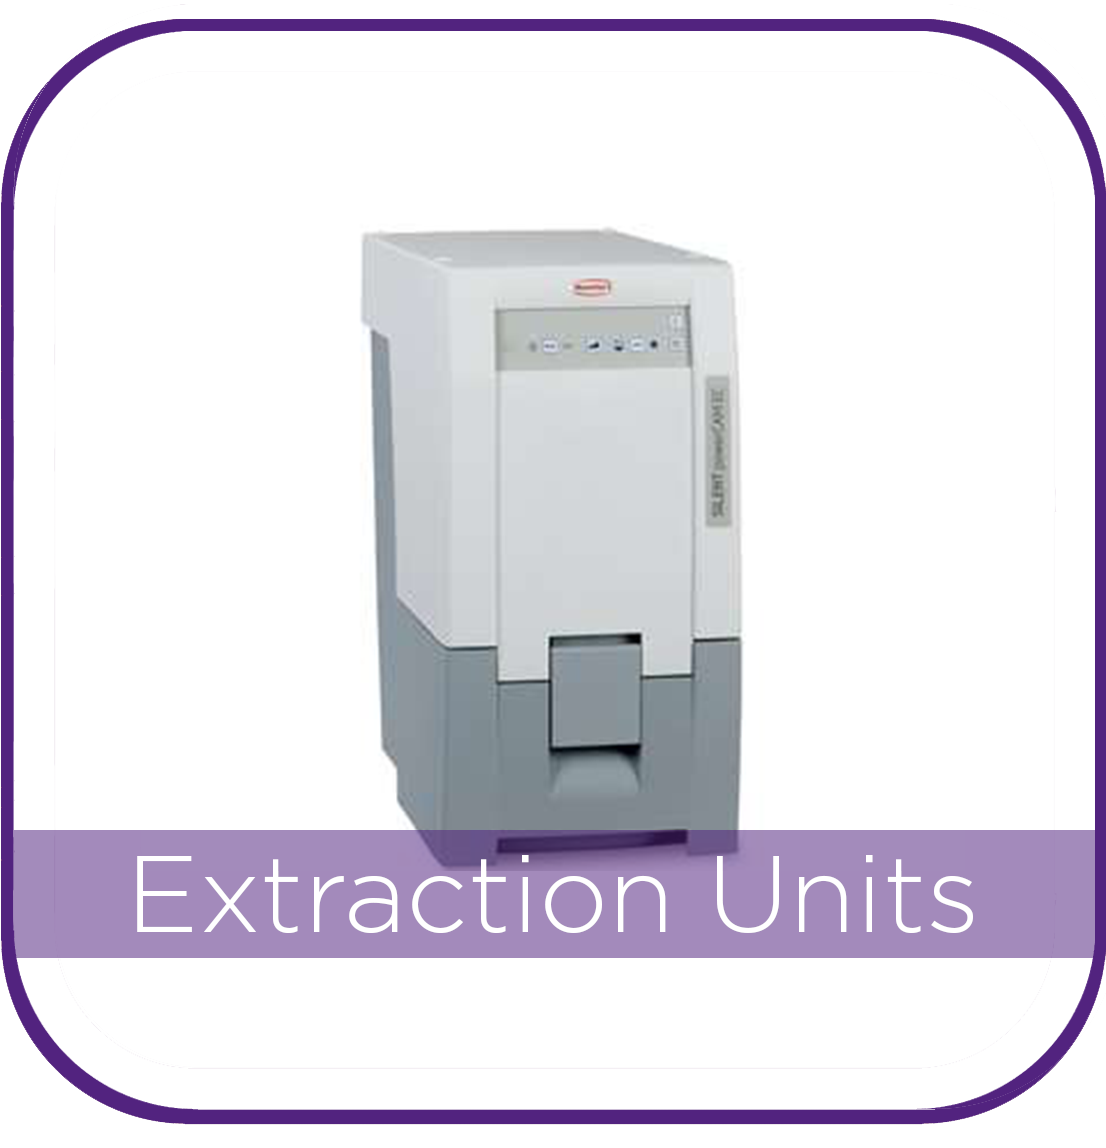 Extraction Units